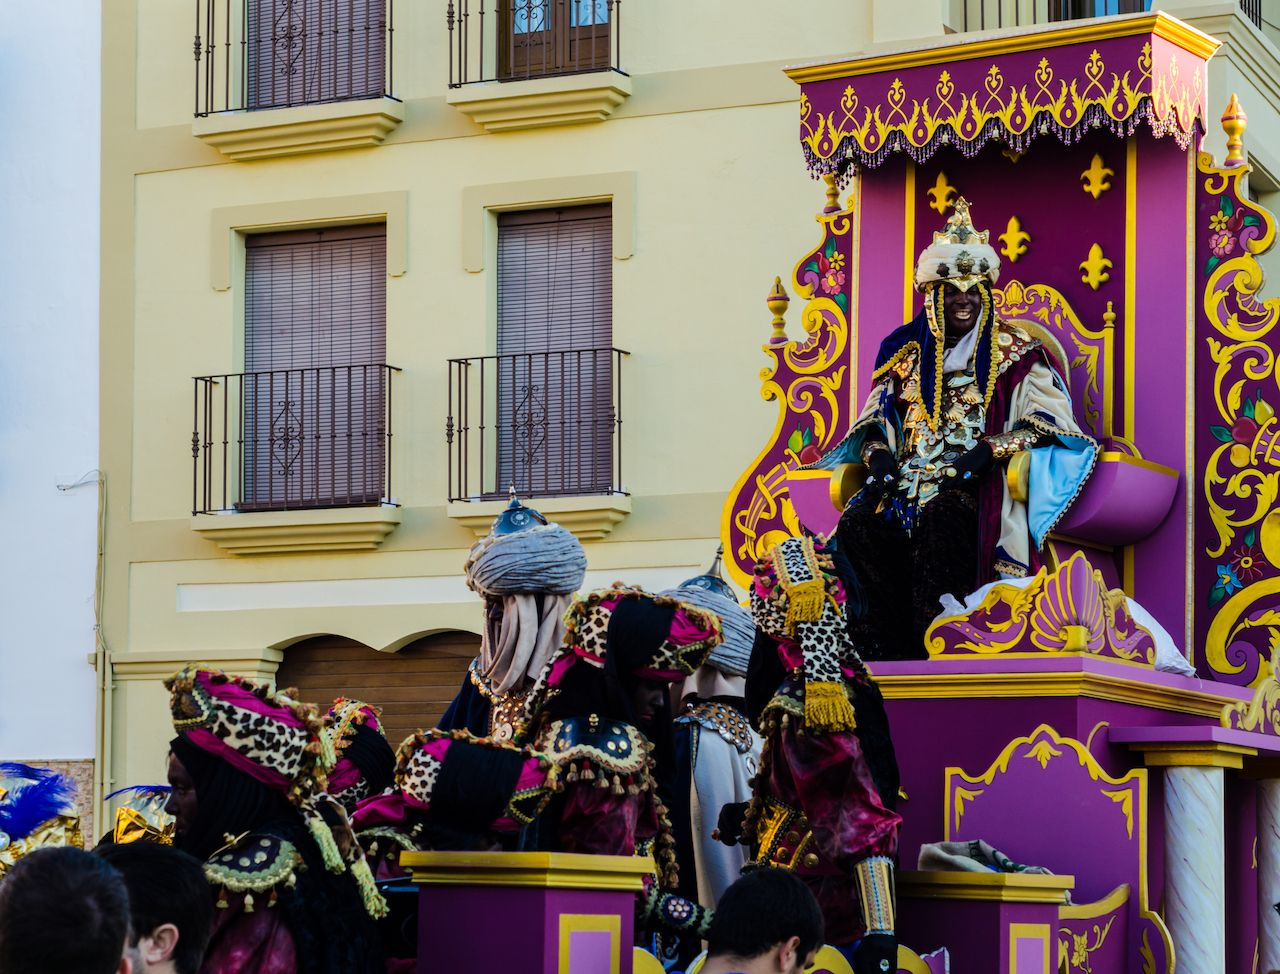 Parade on the occasion of the Epiphany holiday in Malaga province in Spain